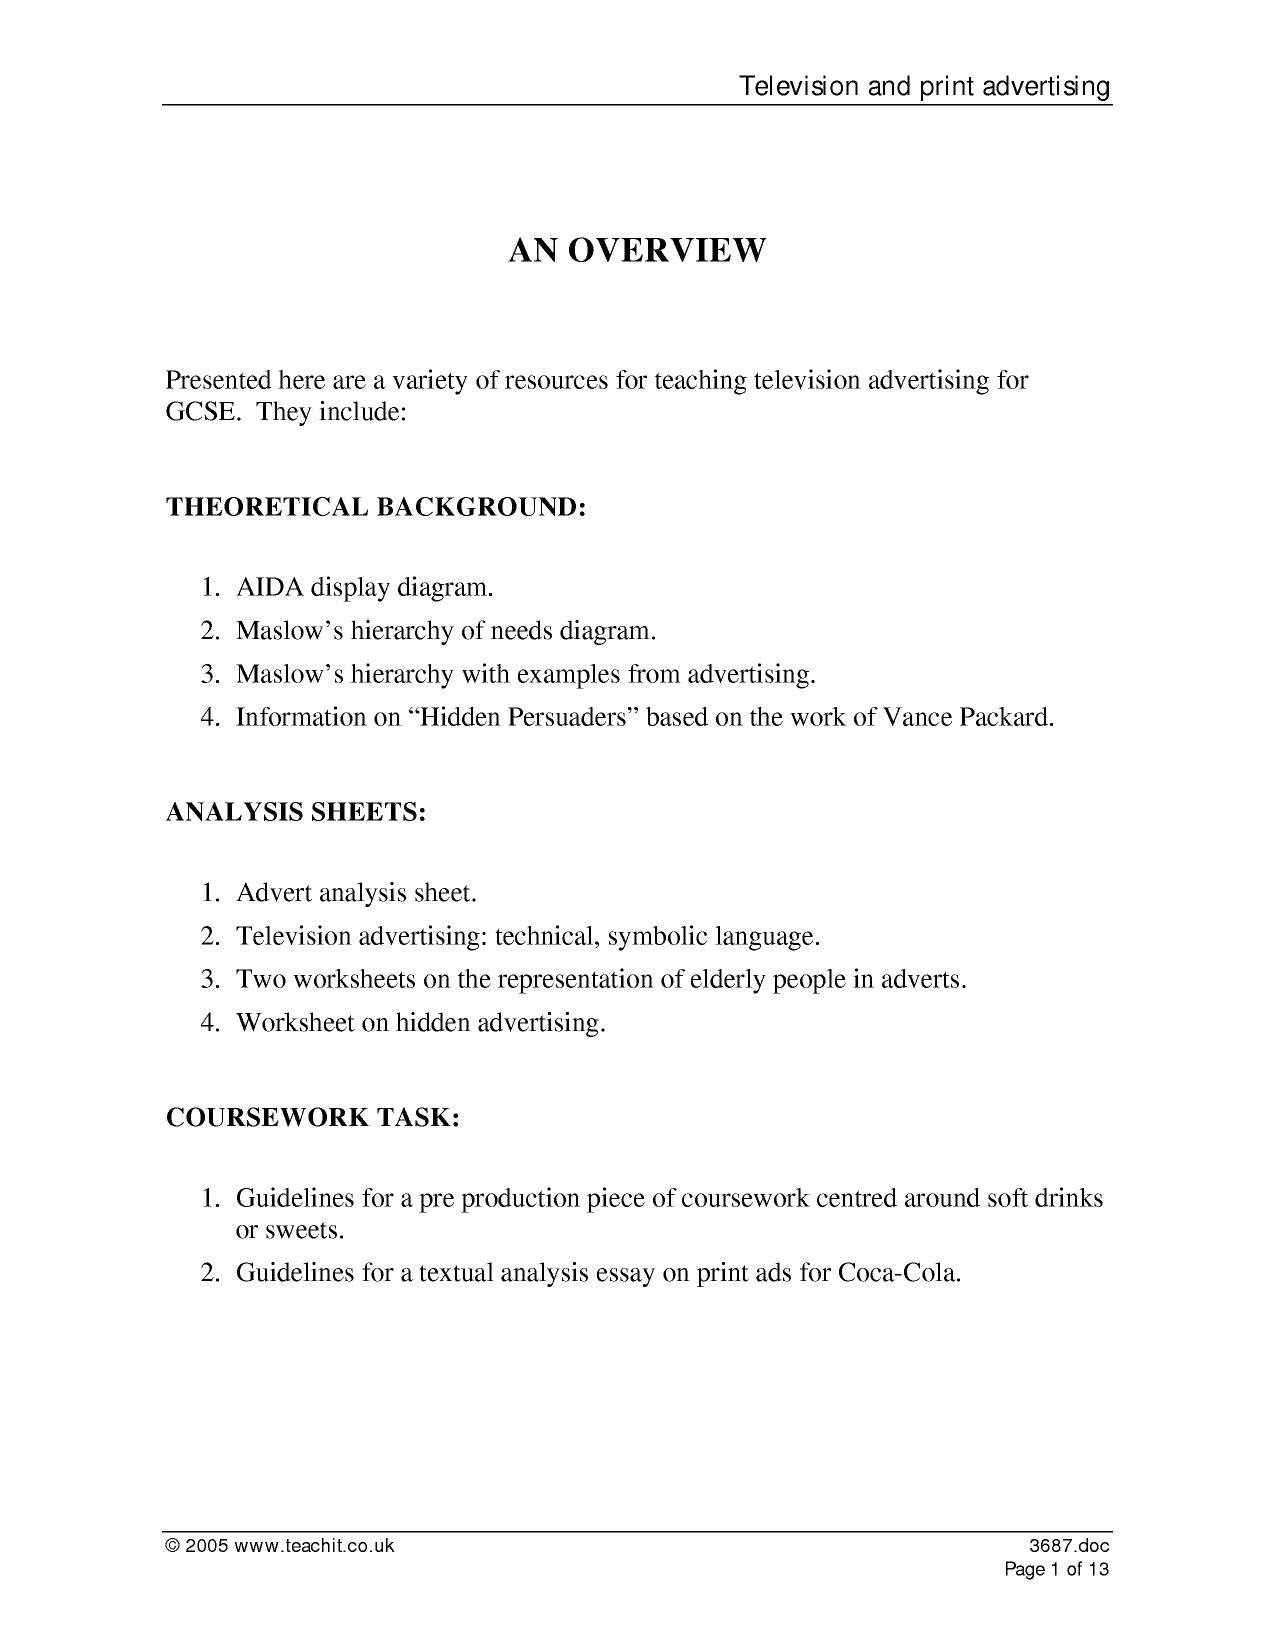 Advertisement Analysis Essay Sample New Television and Print Advertising A Scheme Of Work